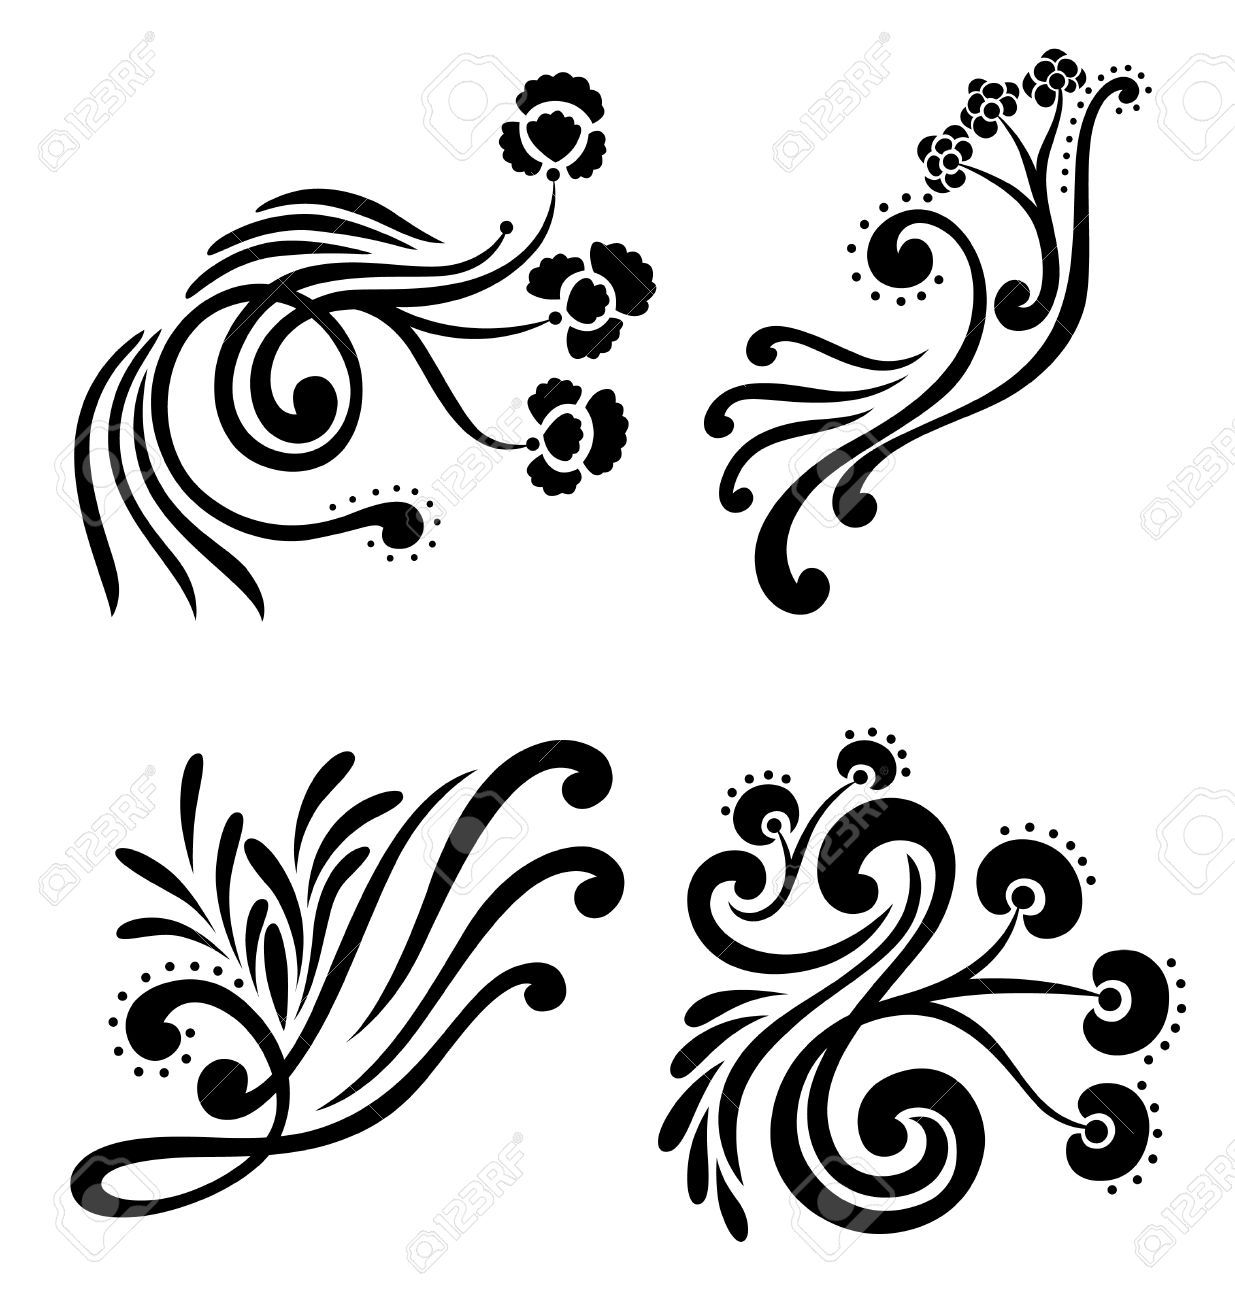 decorative design element of swirled organic shapes with